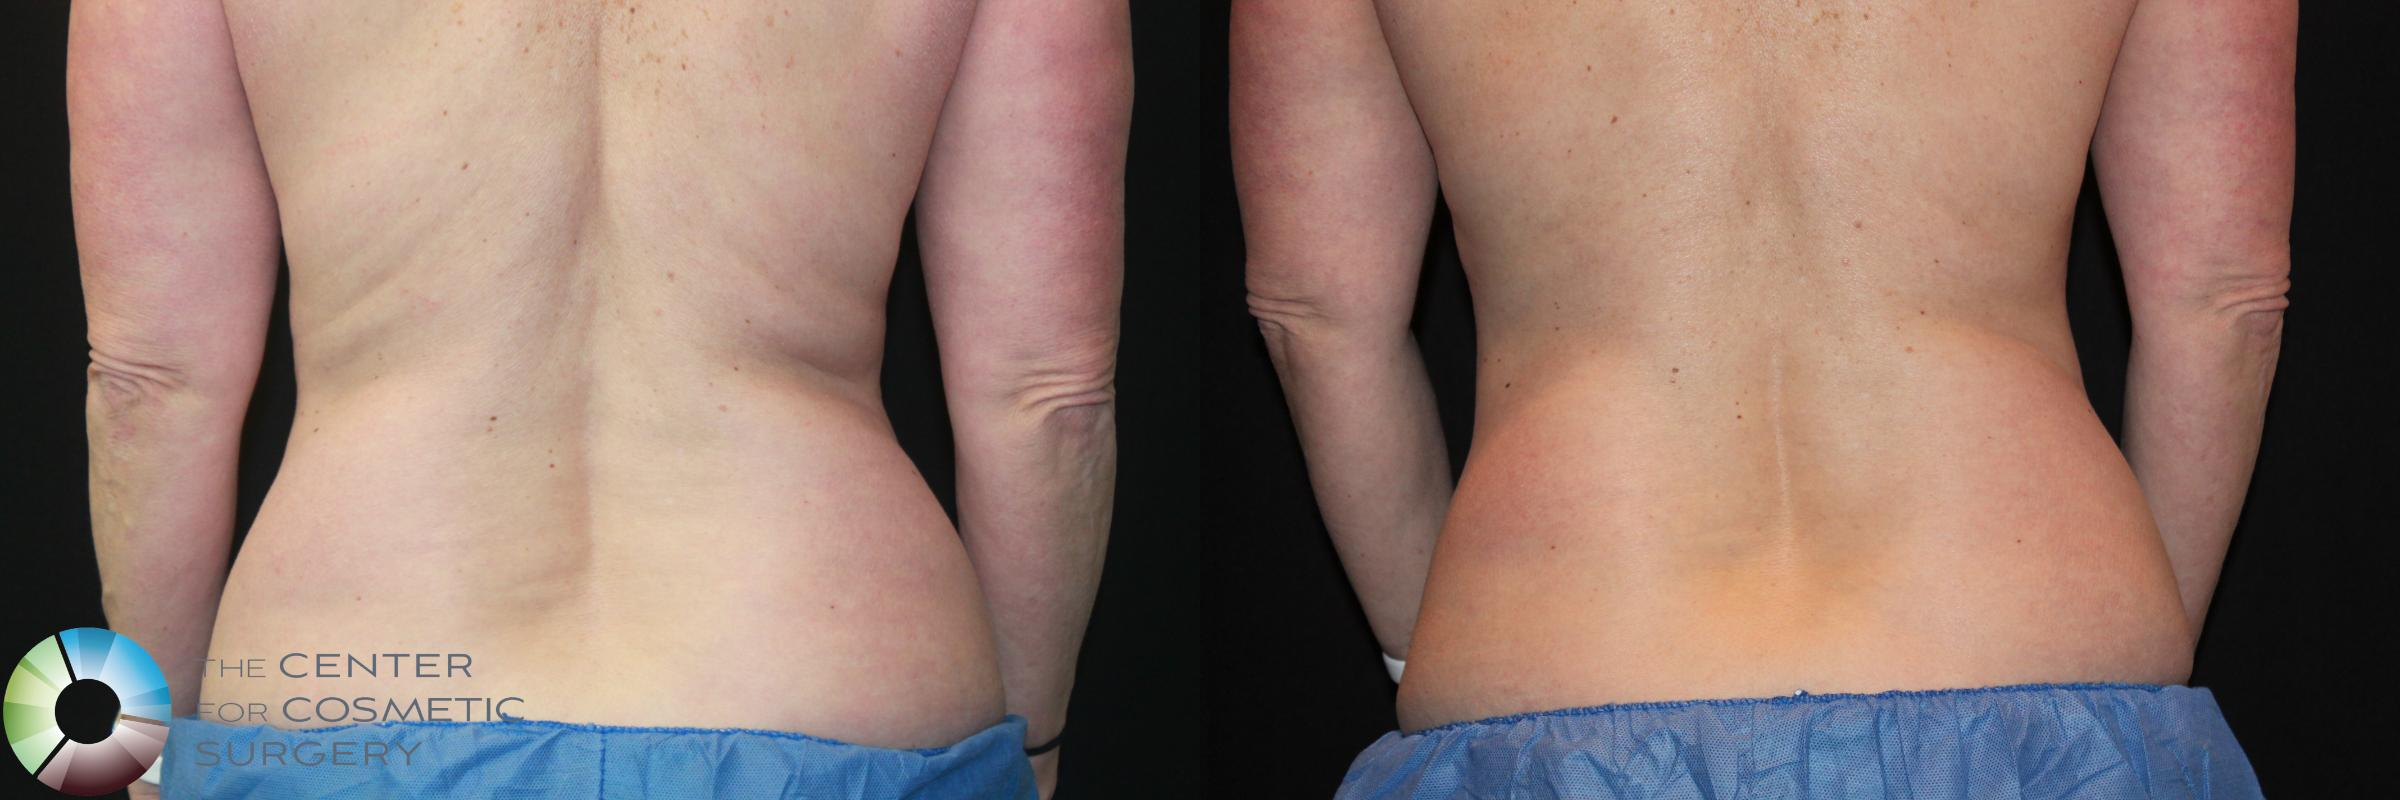 CoolSculpting Case 724 Before & After View #1 | Golden, CO | The Center for Cosmetic Surgery